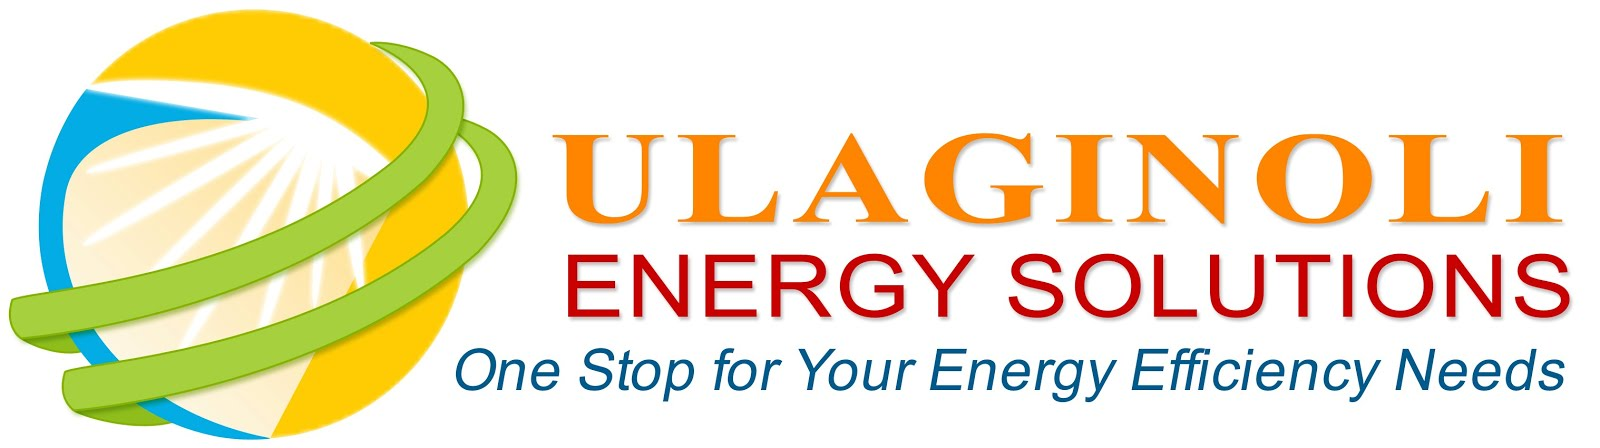 ULAGINOLI ENERGY SOLUTIONS PVT. LTD.